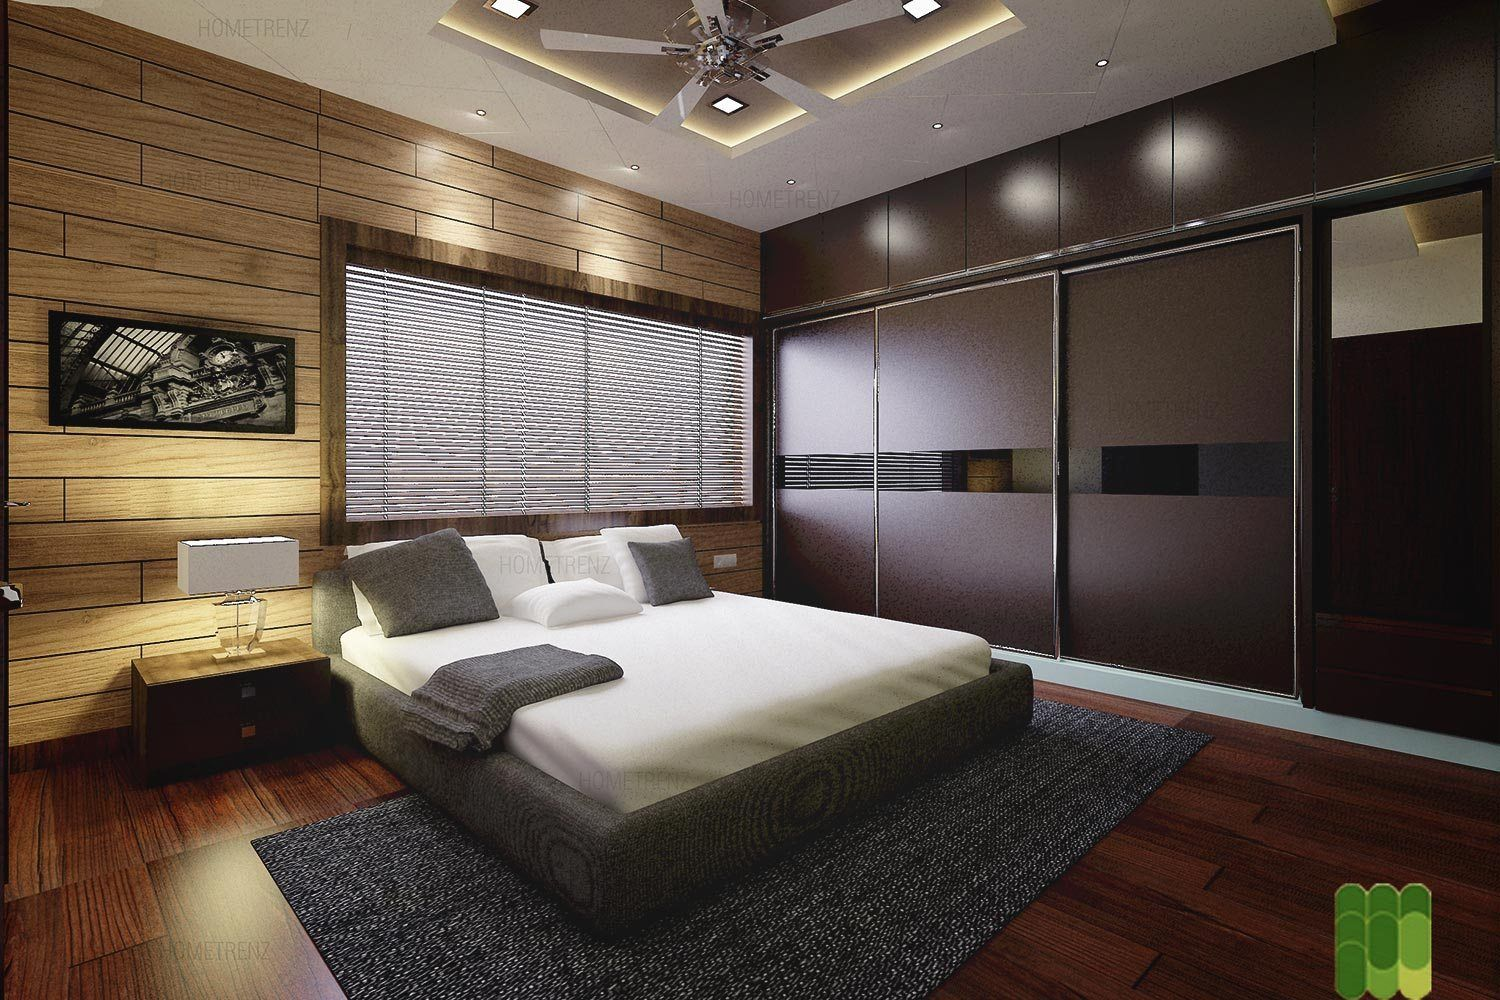 Bedroom Interior Design Hyderabad Interiores Interiores Design